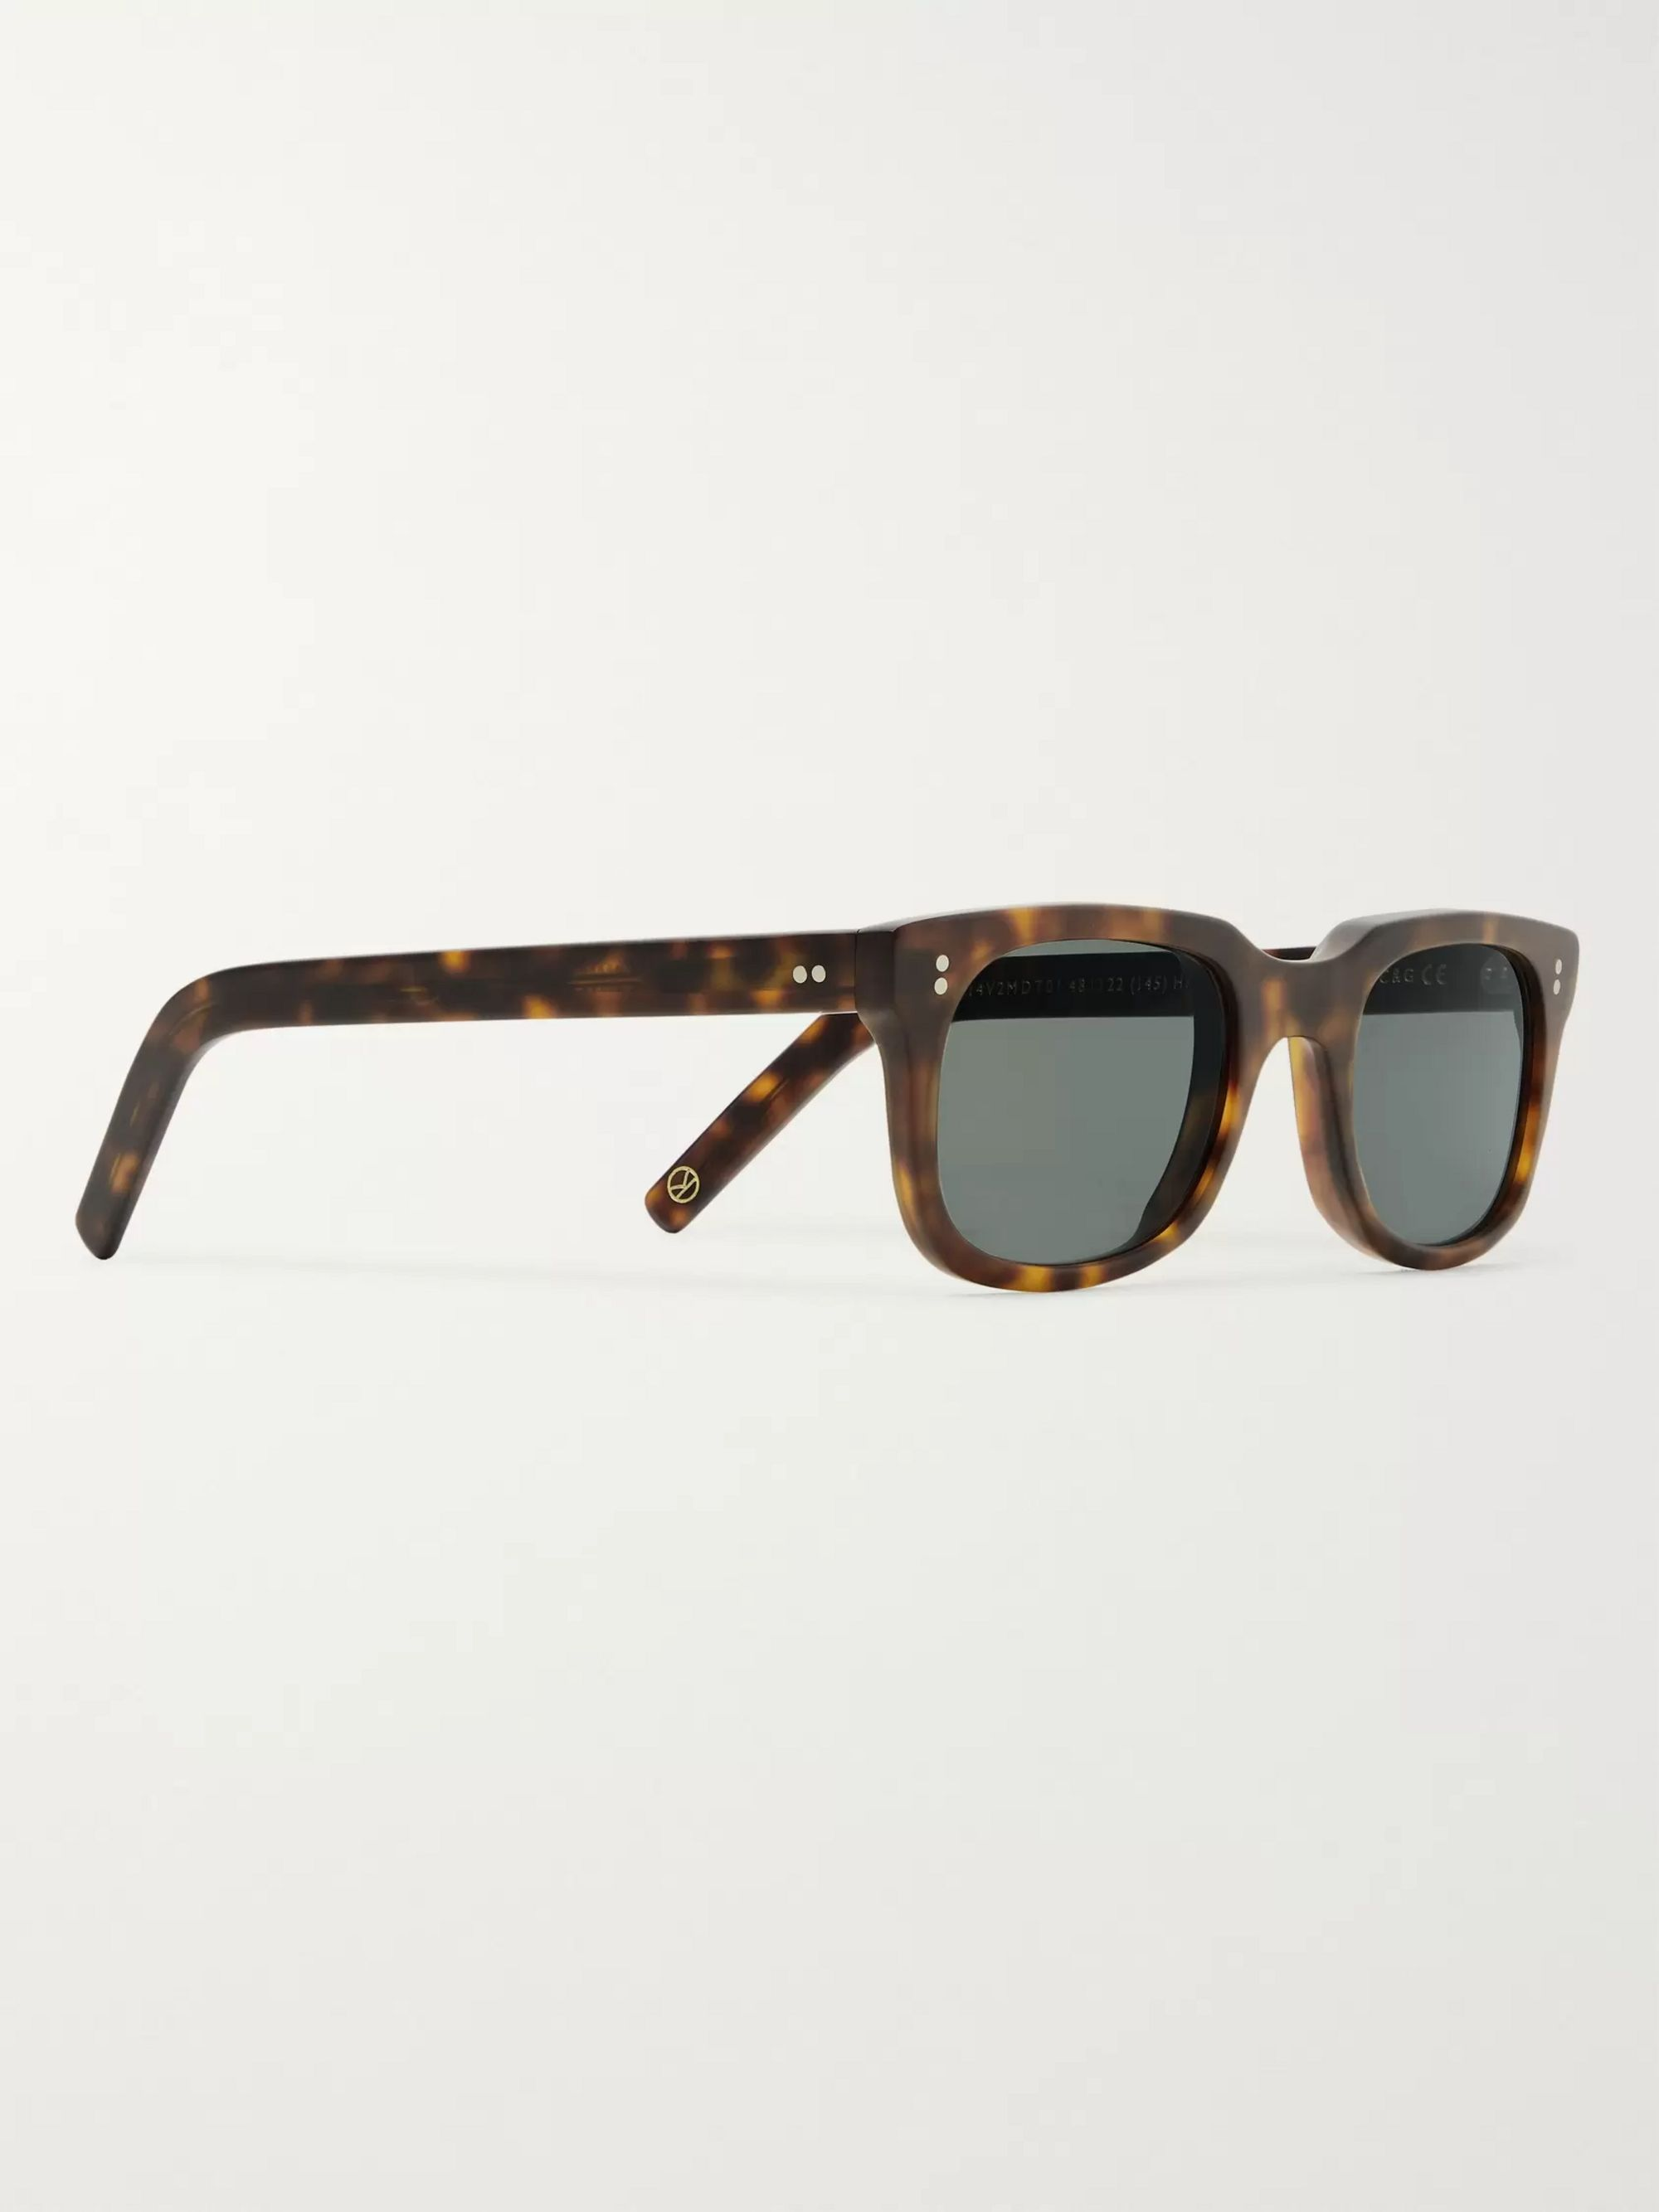 Kingsman + Culter and Gross Square-Frame Matte Tortoiseshell Acetate Sunglasses